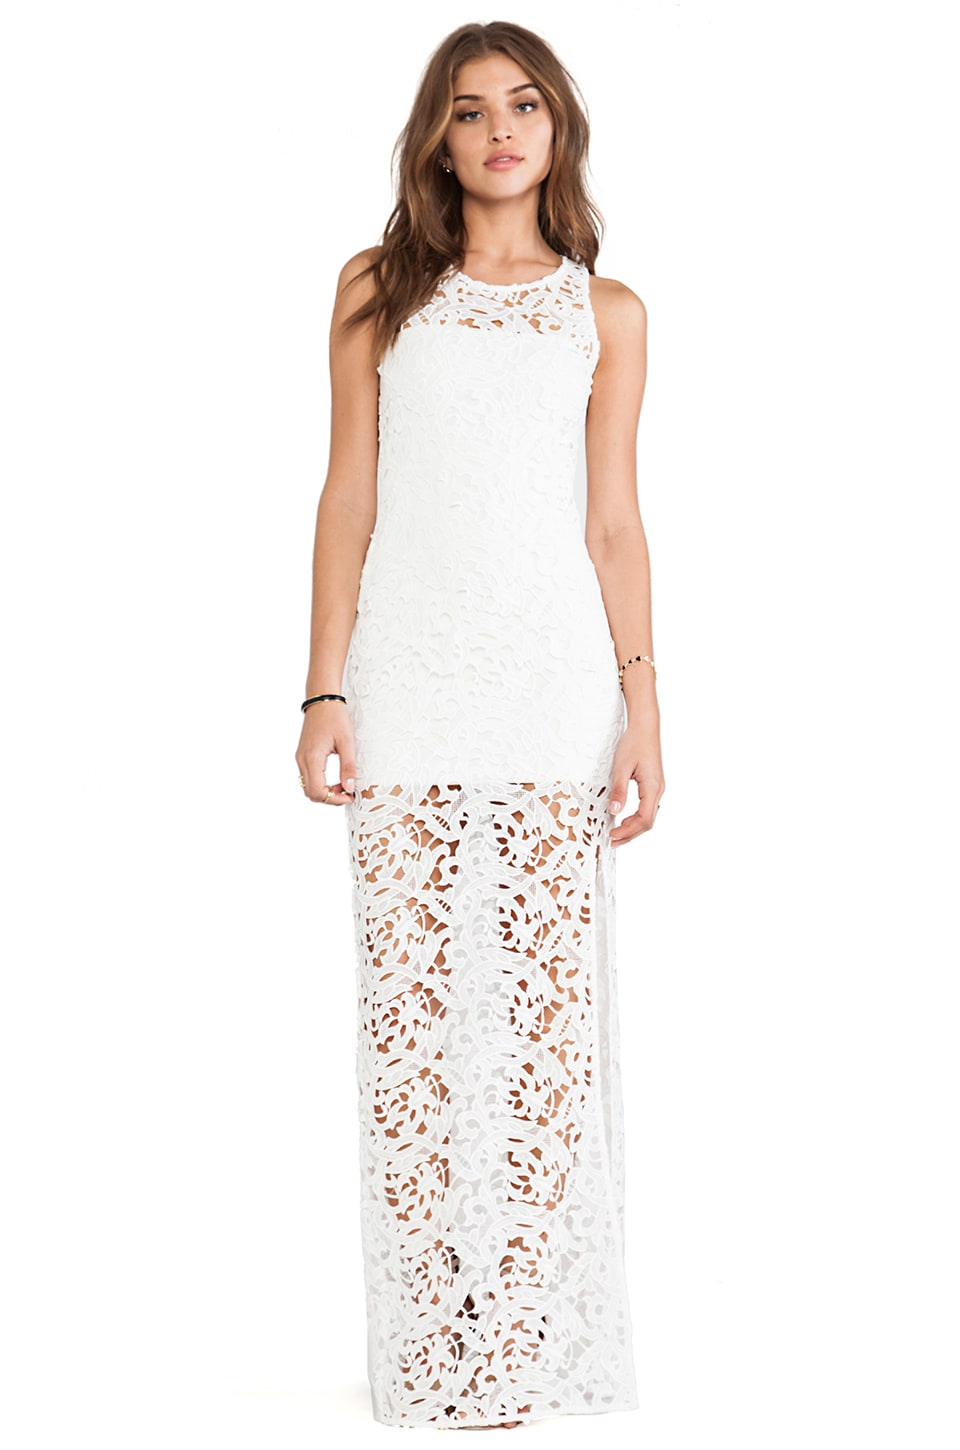 Assali Gala Lace Dress in White